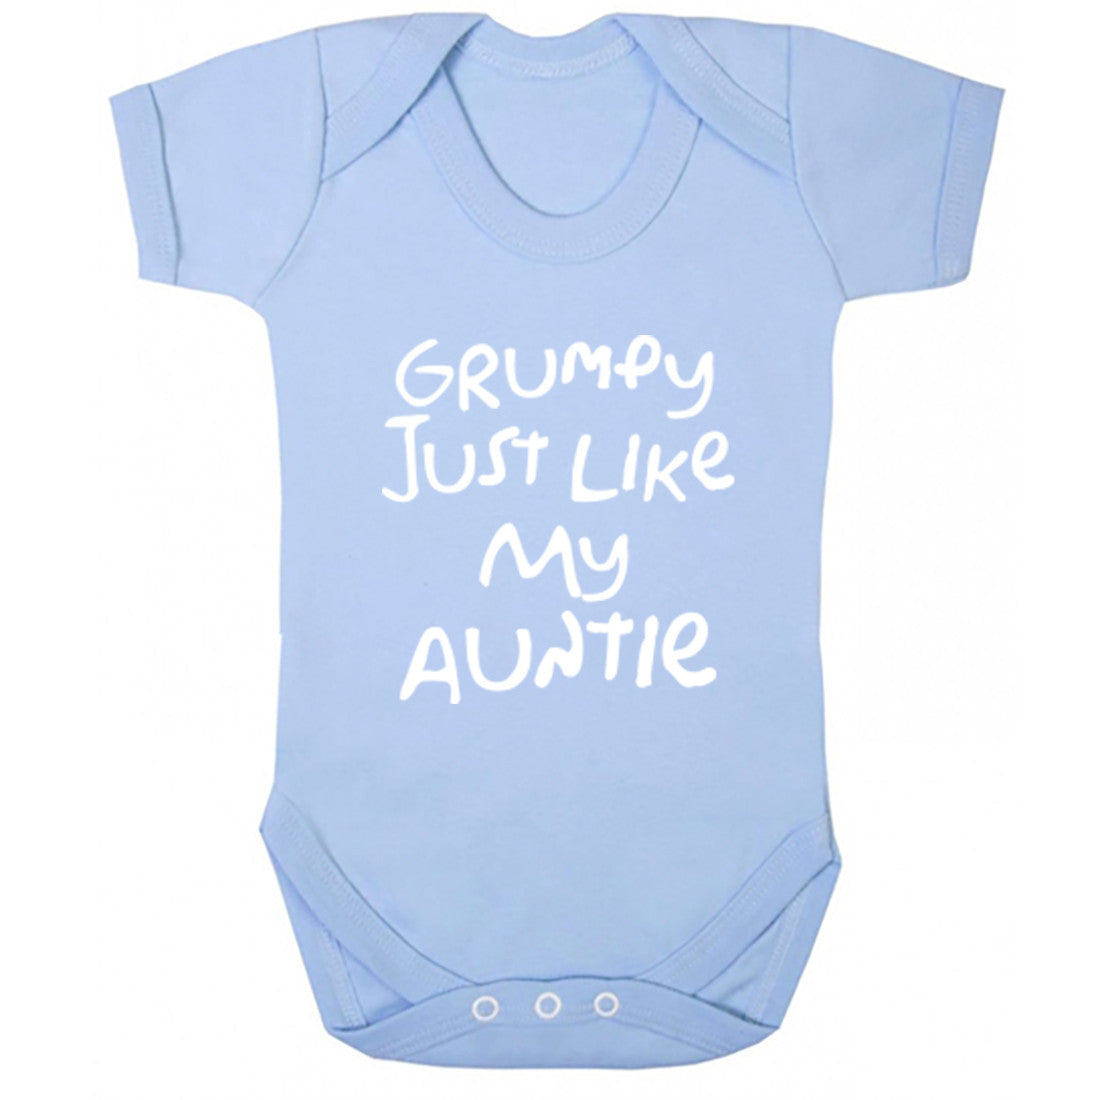 Grumpy Like My Auntie Baby Vest K1414 - Illustrated Identity Ltd.